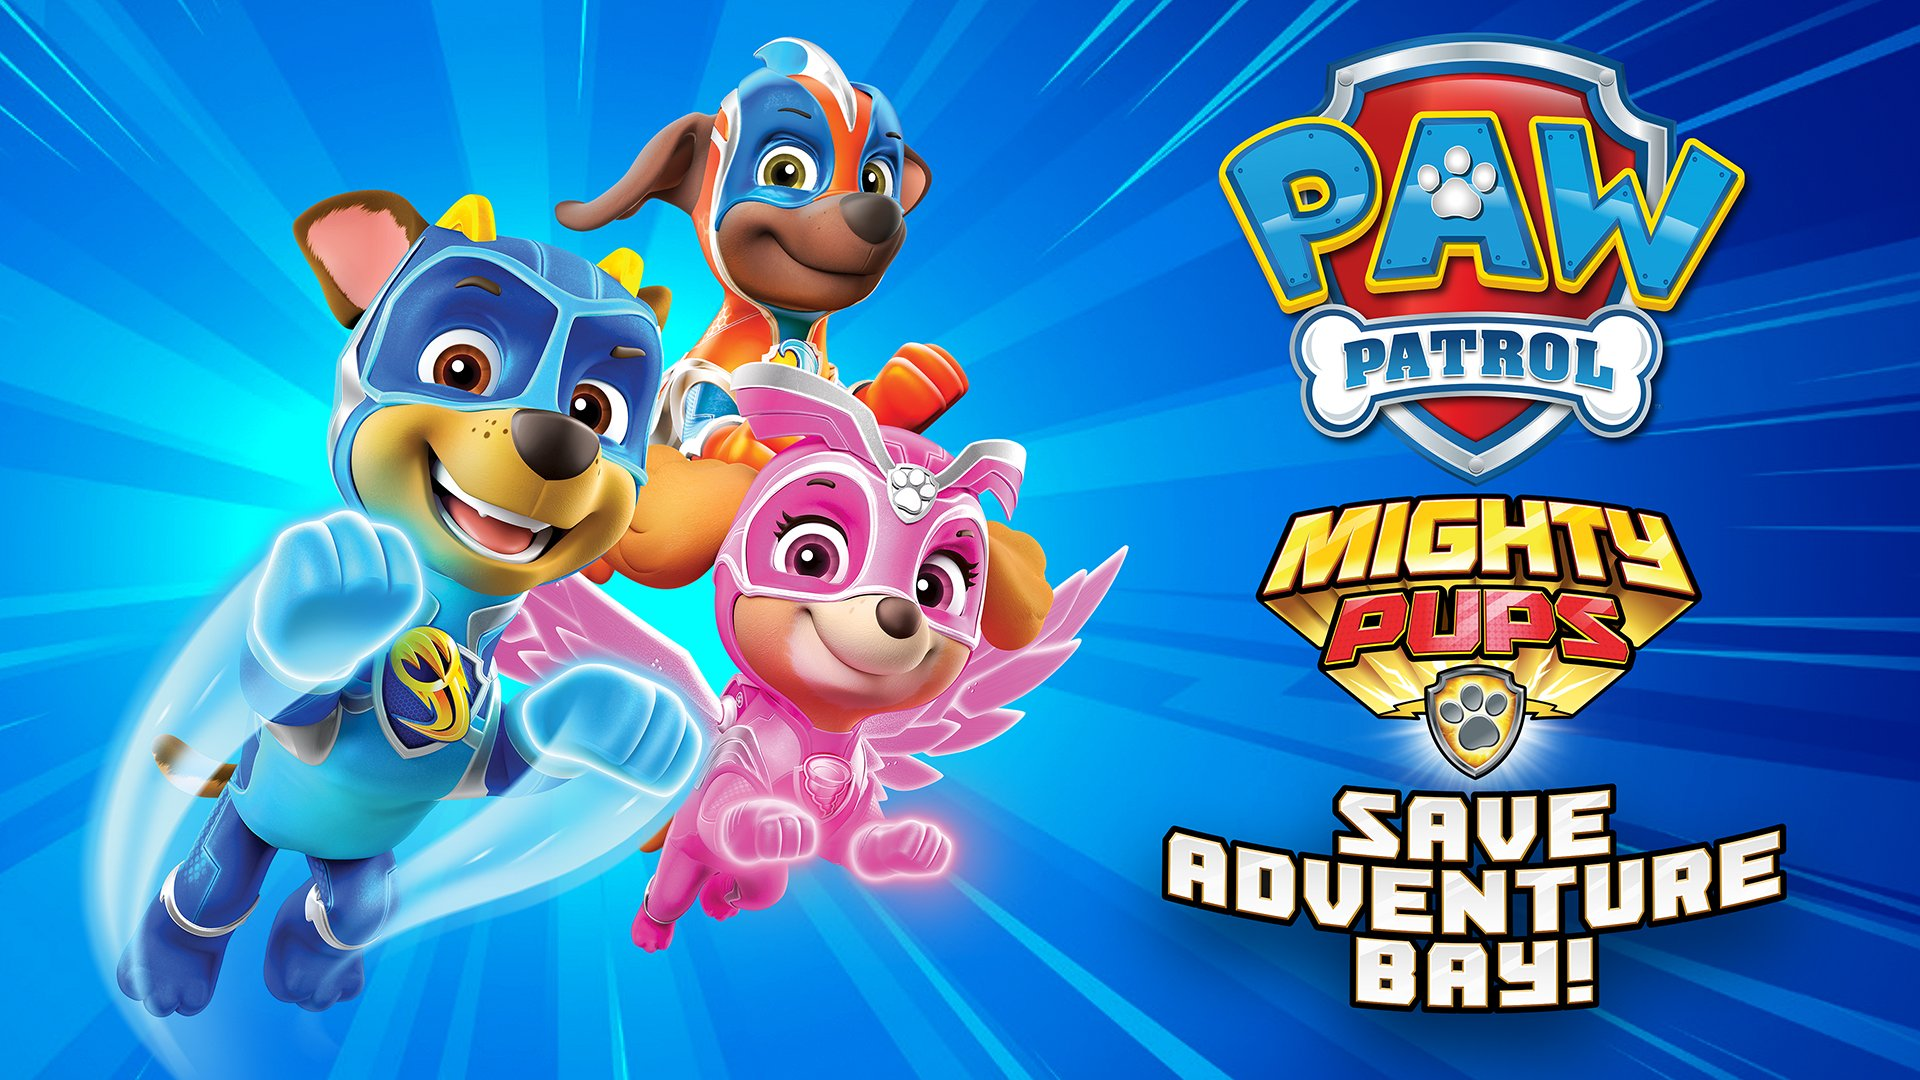 A New Paw Patrol Game Is Coming Out This Fall Superparent